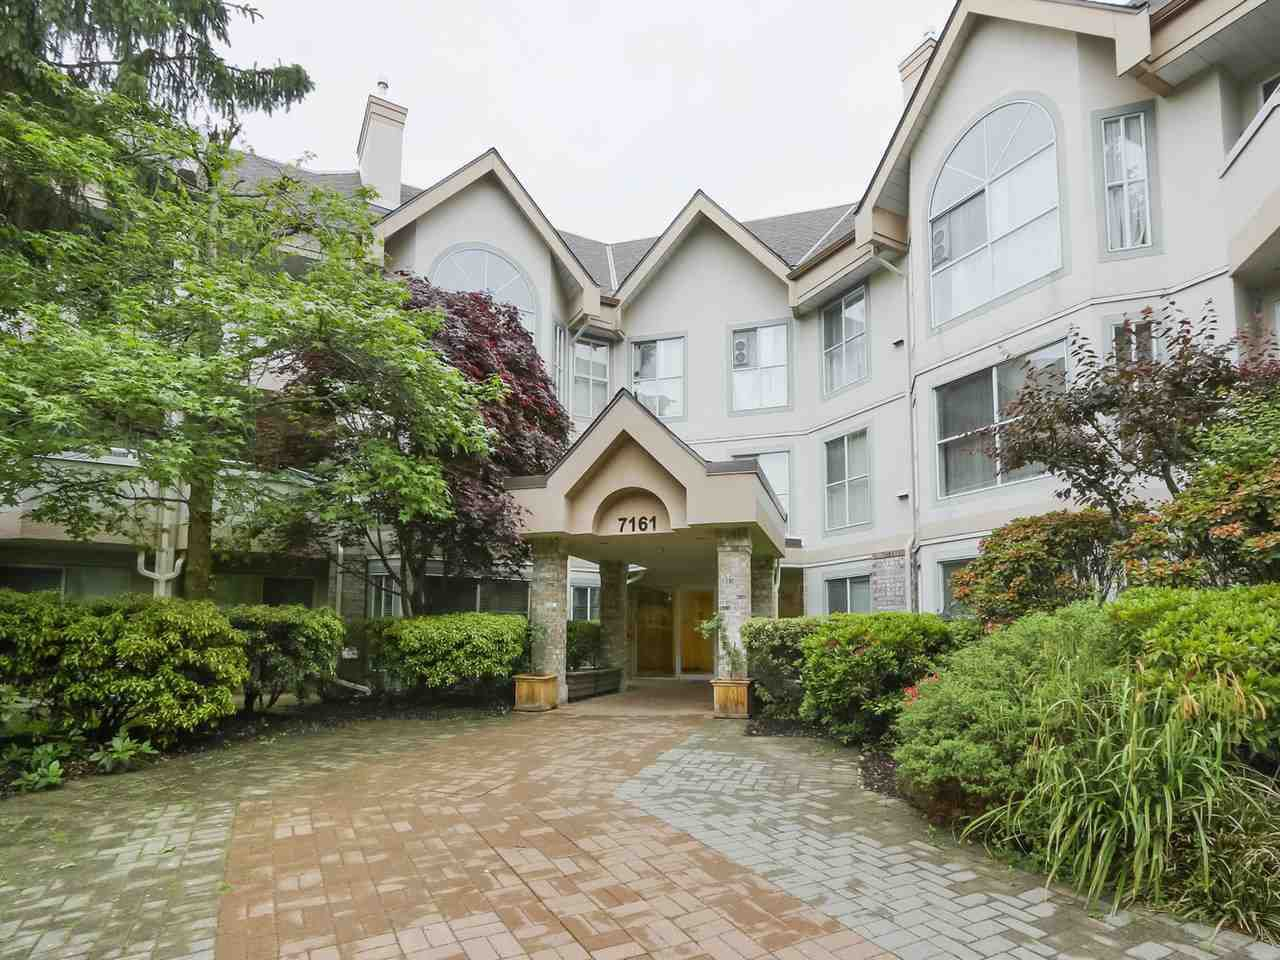 """Main Photo: 312 7161 121 Street in Surrey: West Newton Condo for sale in """"THE HIGHLANDS"""" : MLS®# R2371039"""